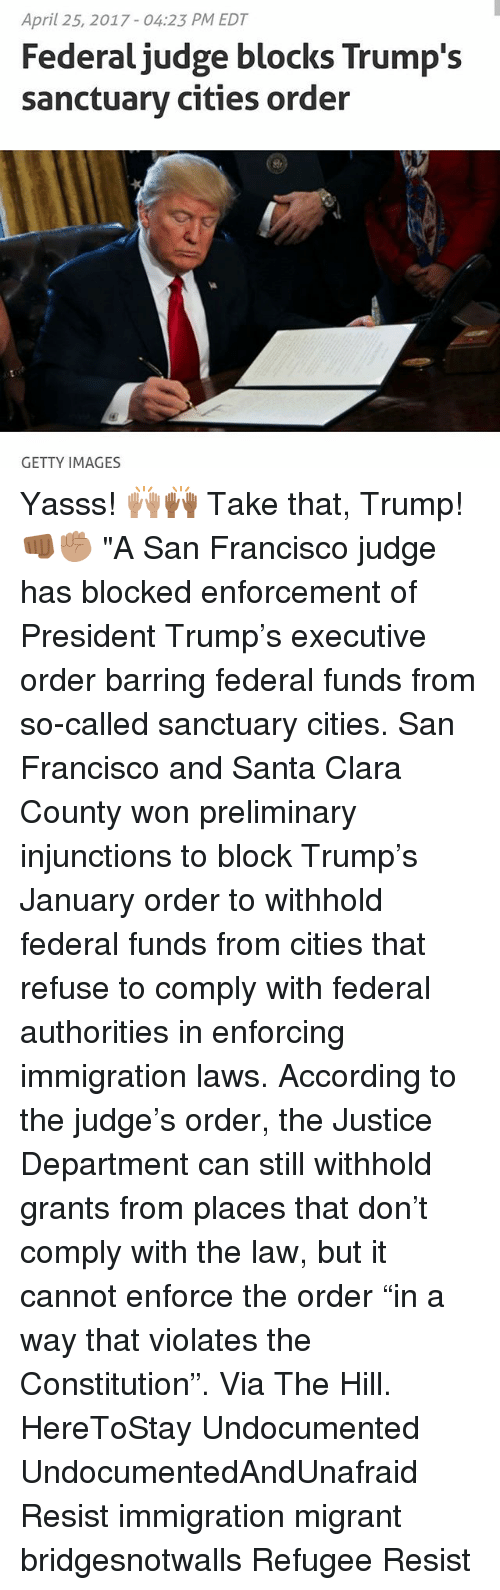 """preliminary: April 25, 2017 04:23 PM EDT  Federal judge blocks Trump's  sanctuary cities order  GETTY IMAGES Yasss! 🙌🏽🙌🏾 Take that, Trump! 👊🏾✊🏽 """"A San Francisco judge has blocked enforcement of President Trump's executive order barring federal funds from so-called sanctuary cities. San Francisco and Santa Clara County won preliminary injunctions to block Trump's January order to withhold federal funds from cities that refuse to comply with federal authorities in enforcing immigration laws. According to the judge's order, the Justice Department can still withhold grants from places that don't comply with the law, but it cannot enforce the order """"in a way that violates the Constitution"""". Via The Hill. HereToStay Undocumented UndocumentedAndUnafraid Resist immigration migrant bridgesnotwalls Refugee Resist"""